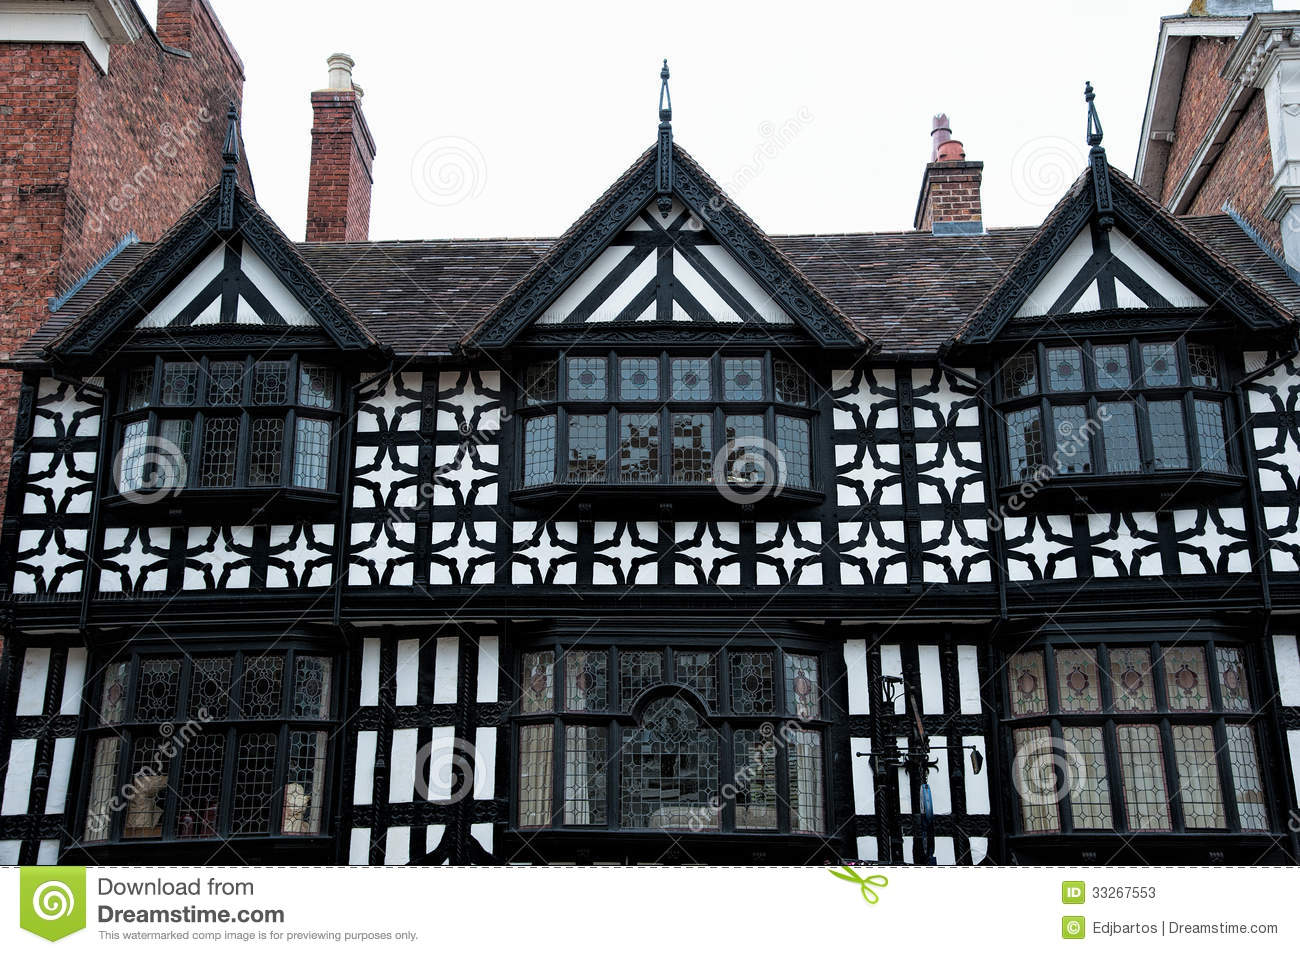 Tudor buildings stock image. Image of landmark, british